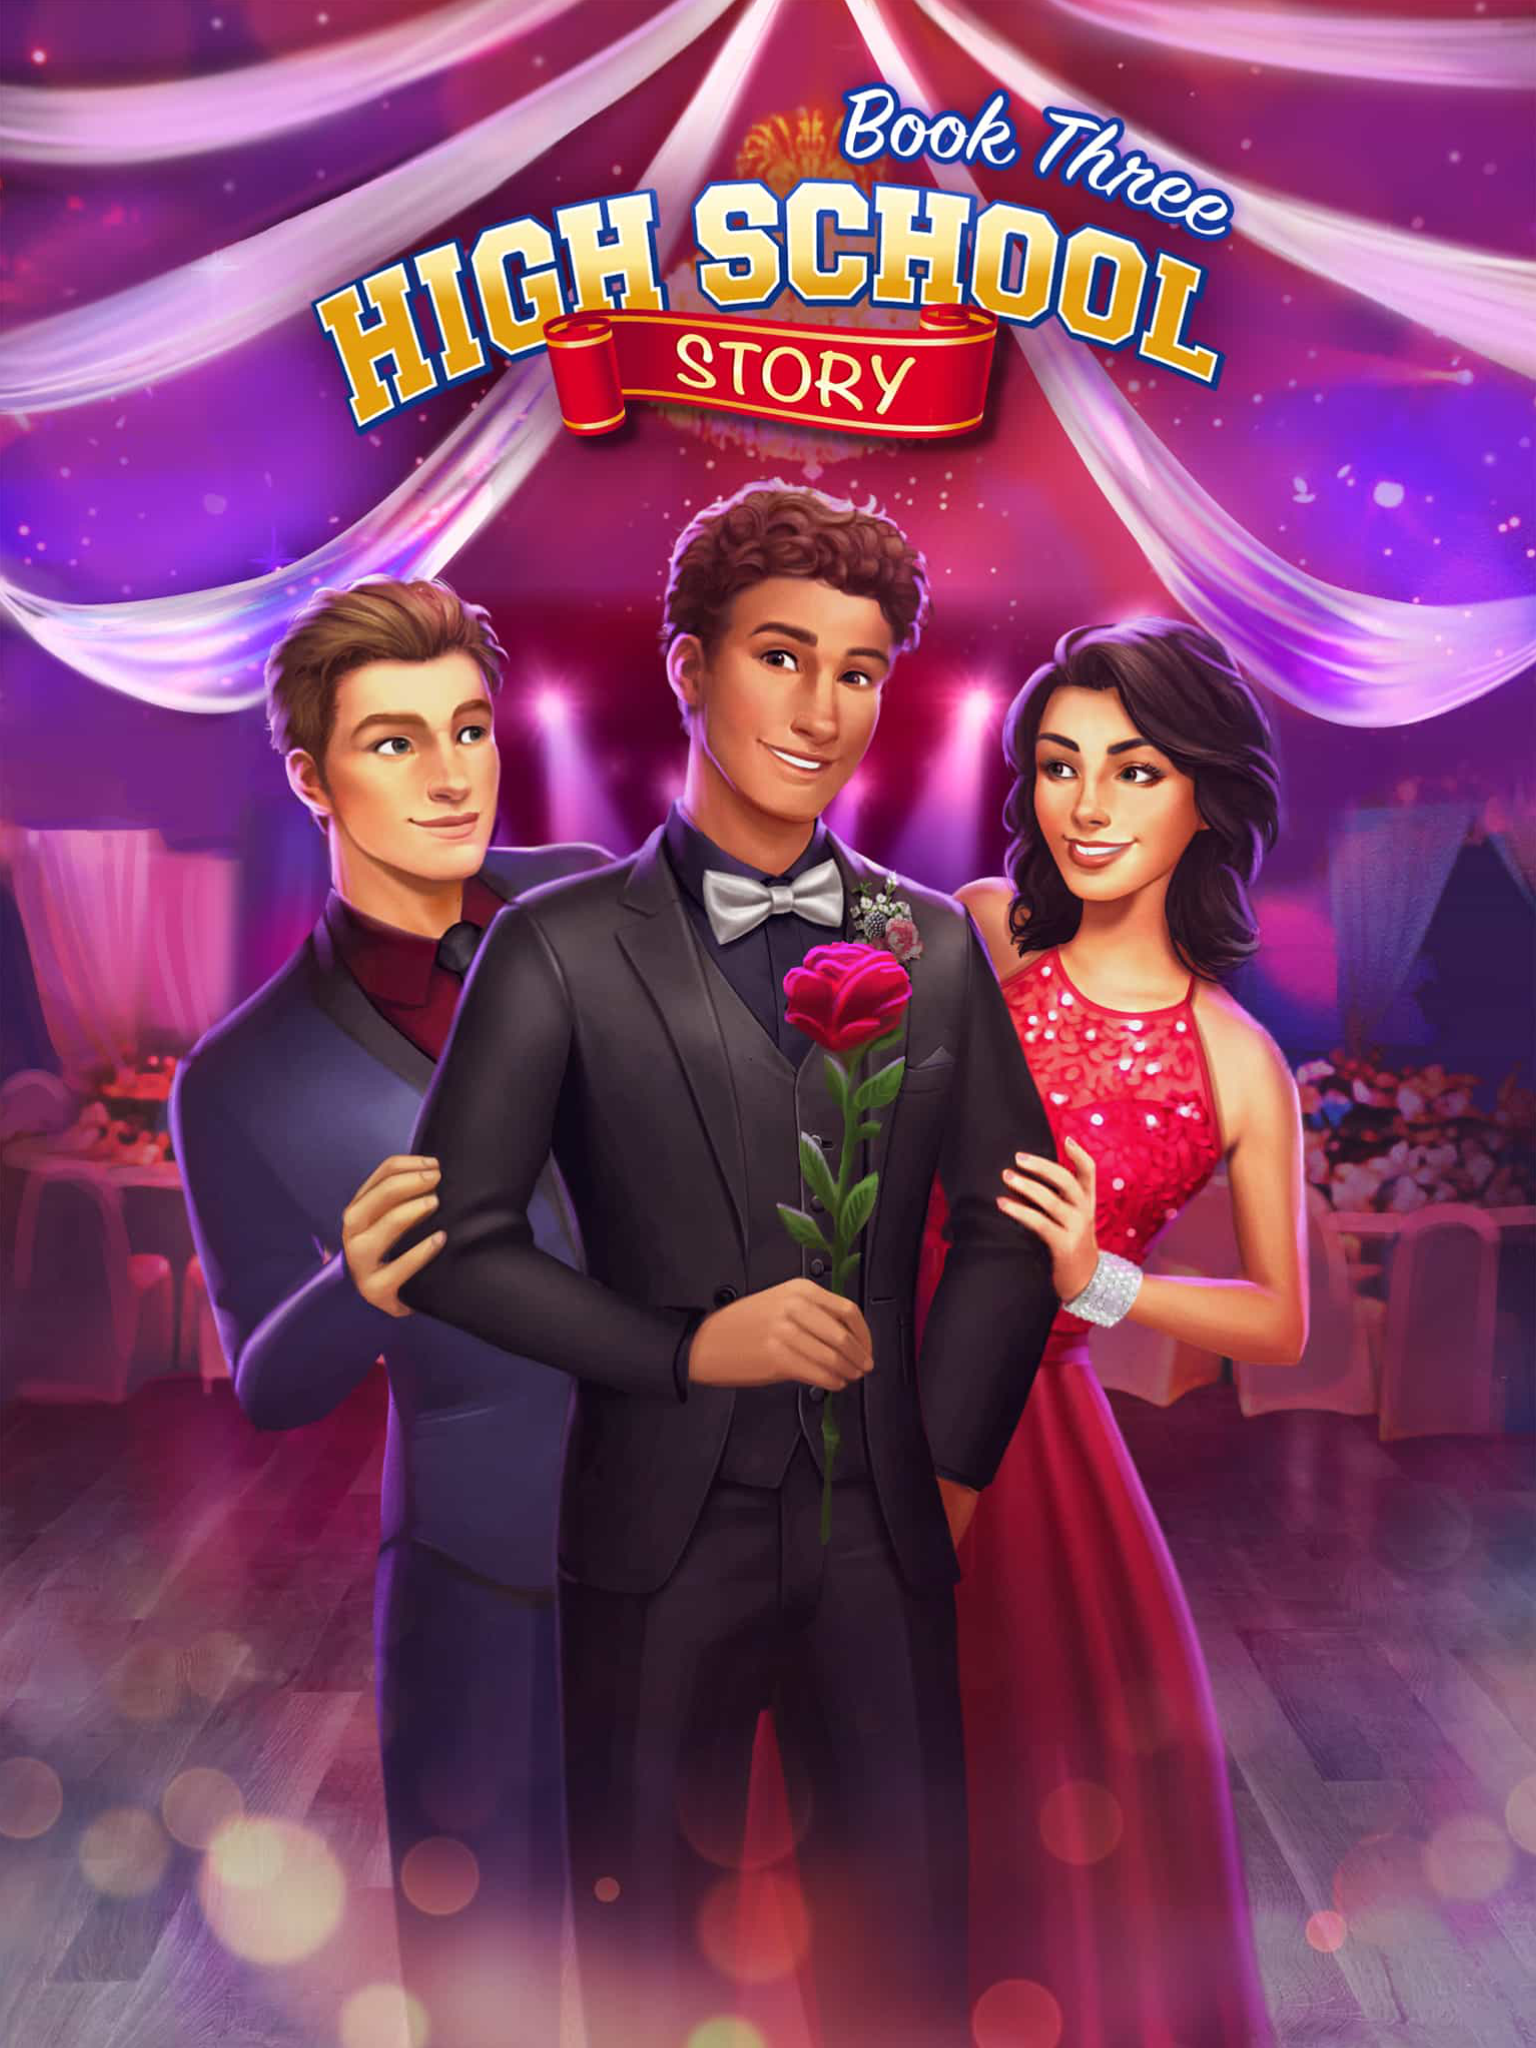 High School Story, Book 3 Choices